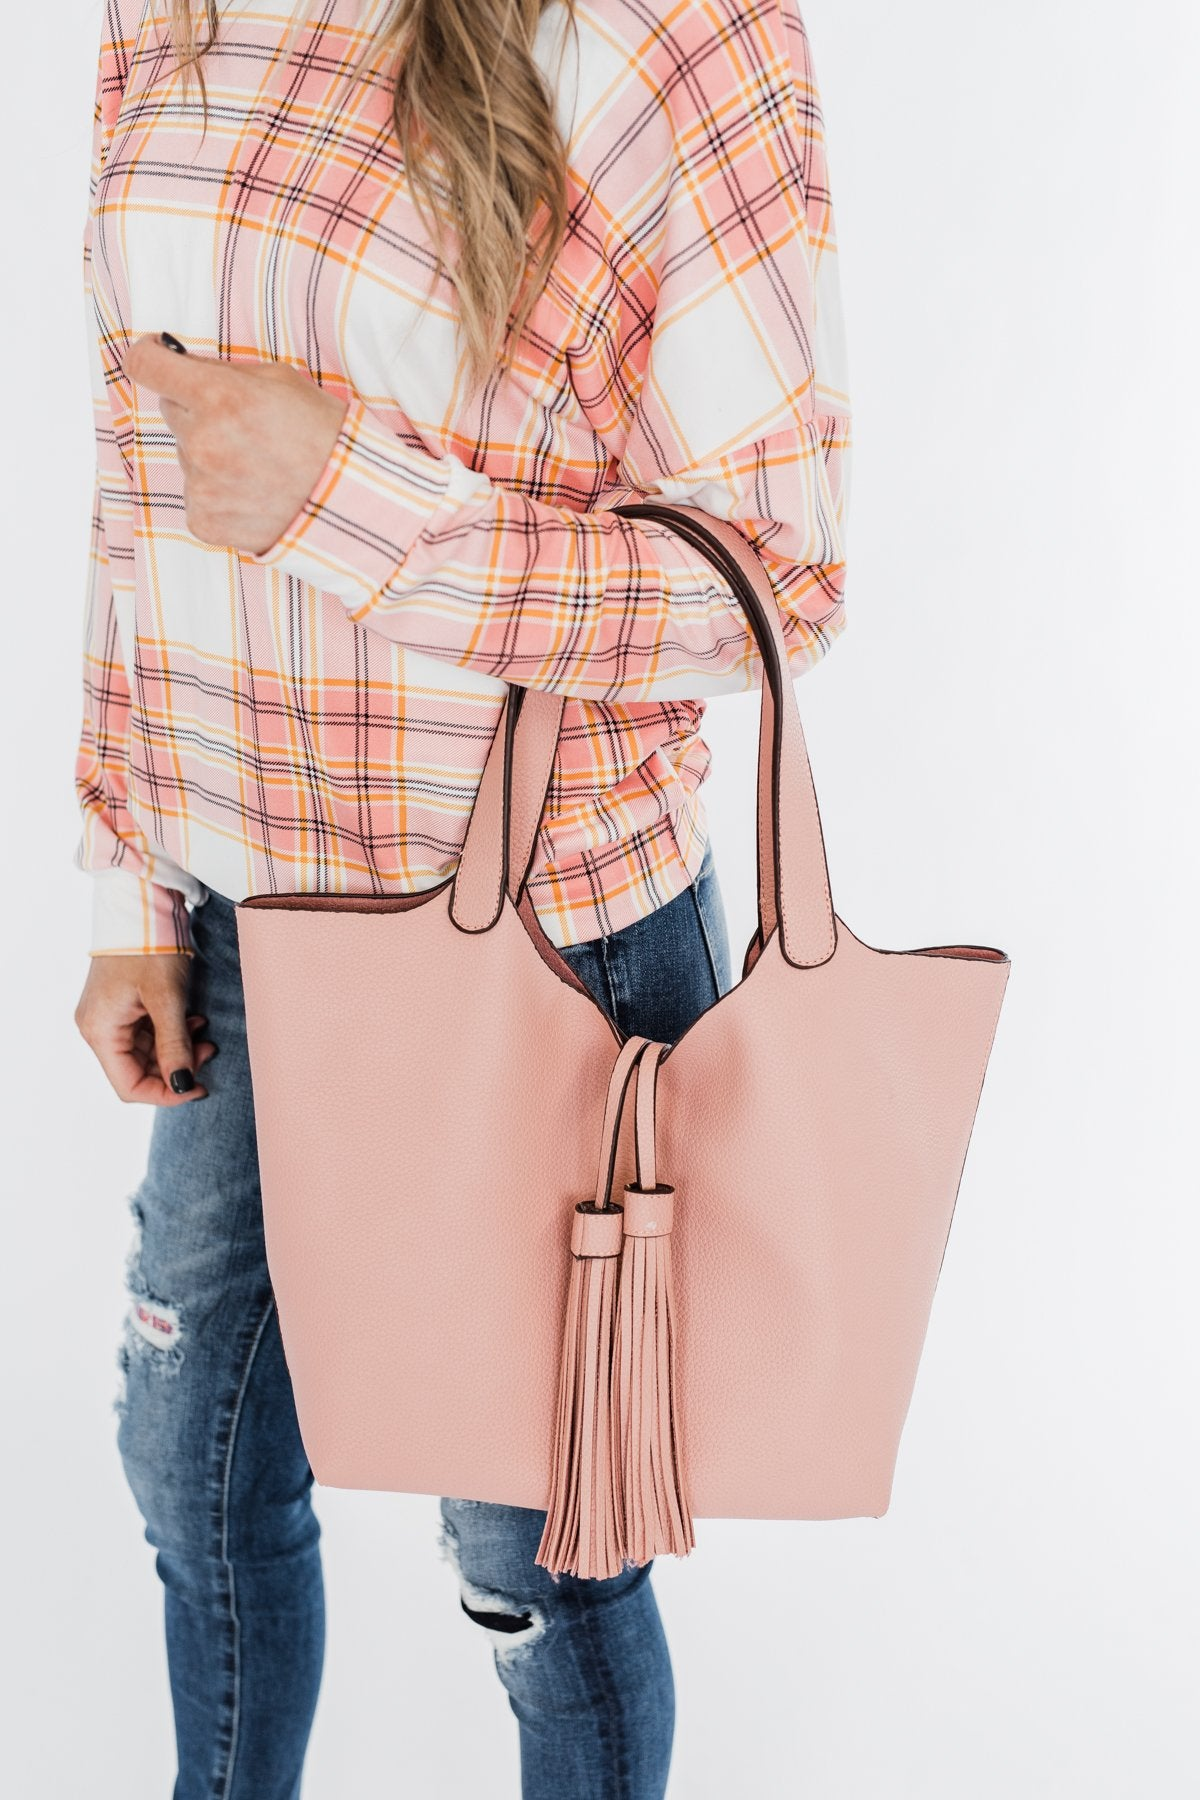 Tassel Detail Purse- Blush